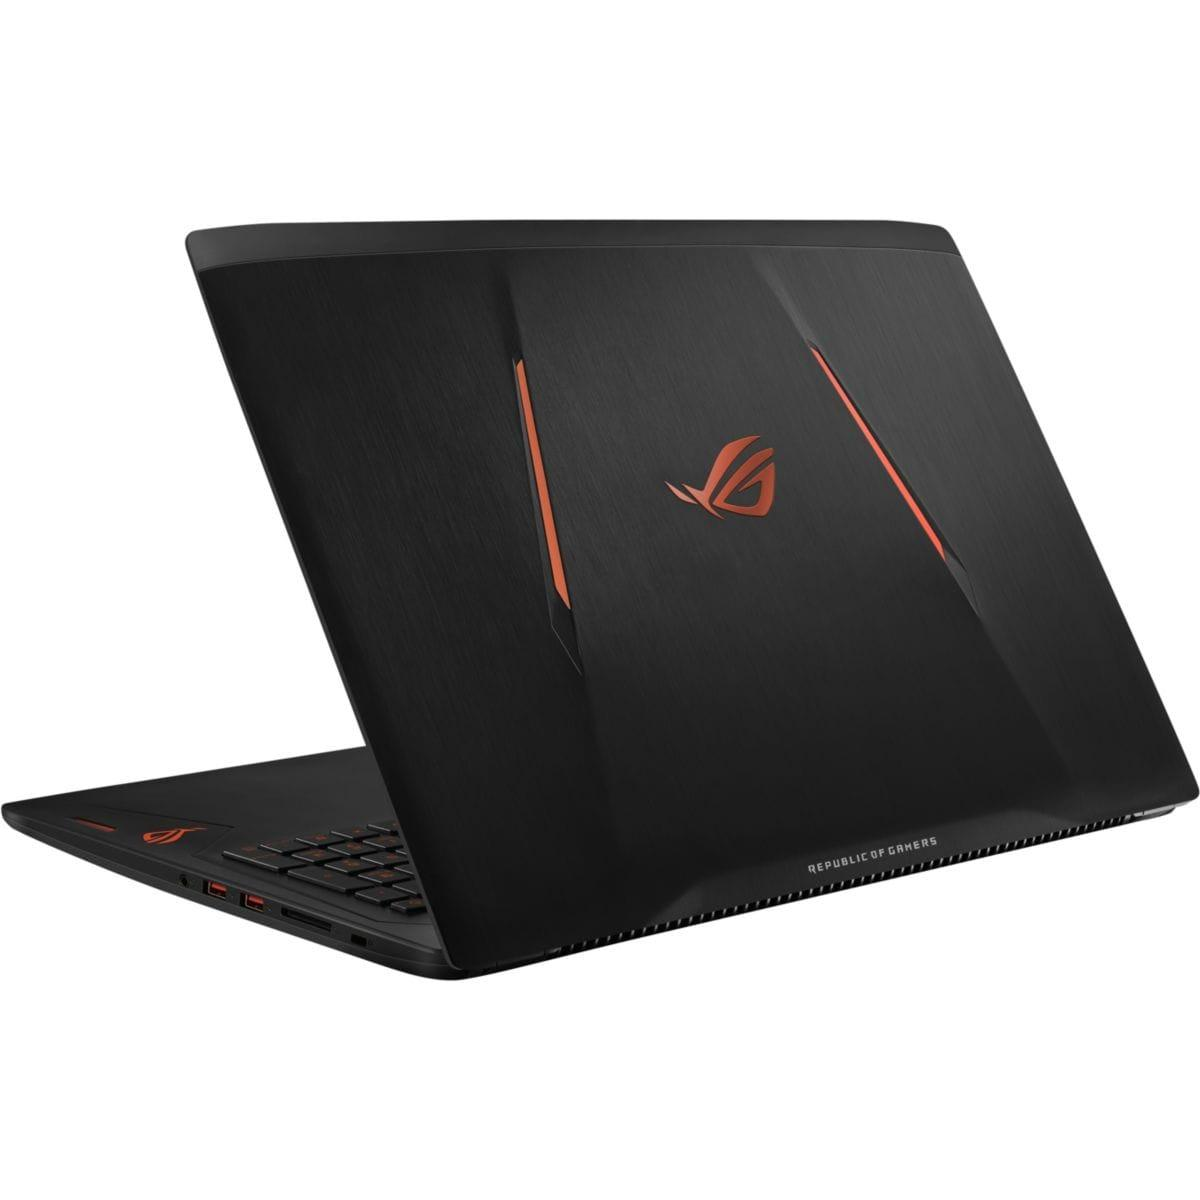 Asus ROG - Core i7-6700HQ 2,6 GHz - HDD + SSD 1152 Go - RAM 8 Go - AZERTY